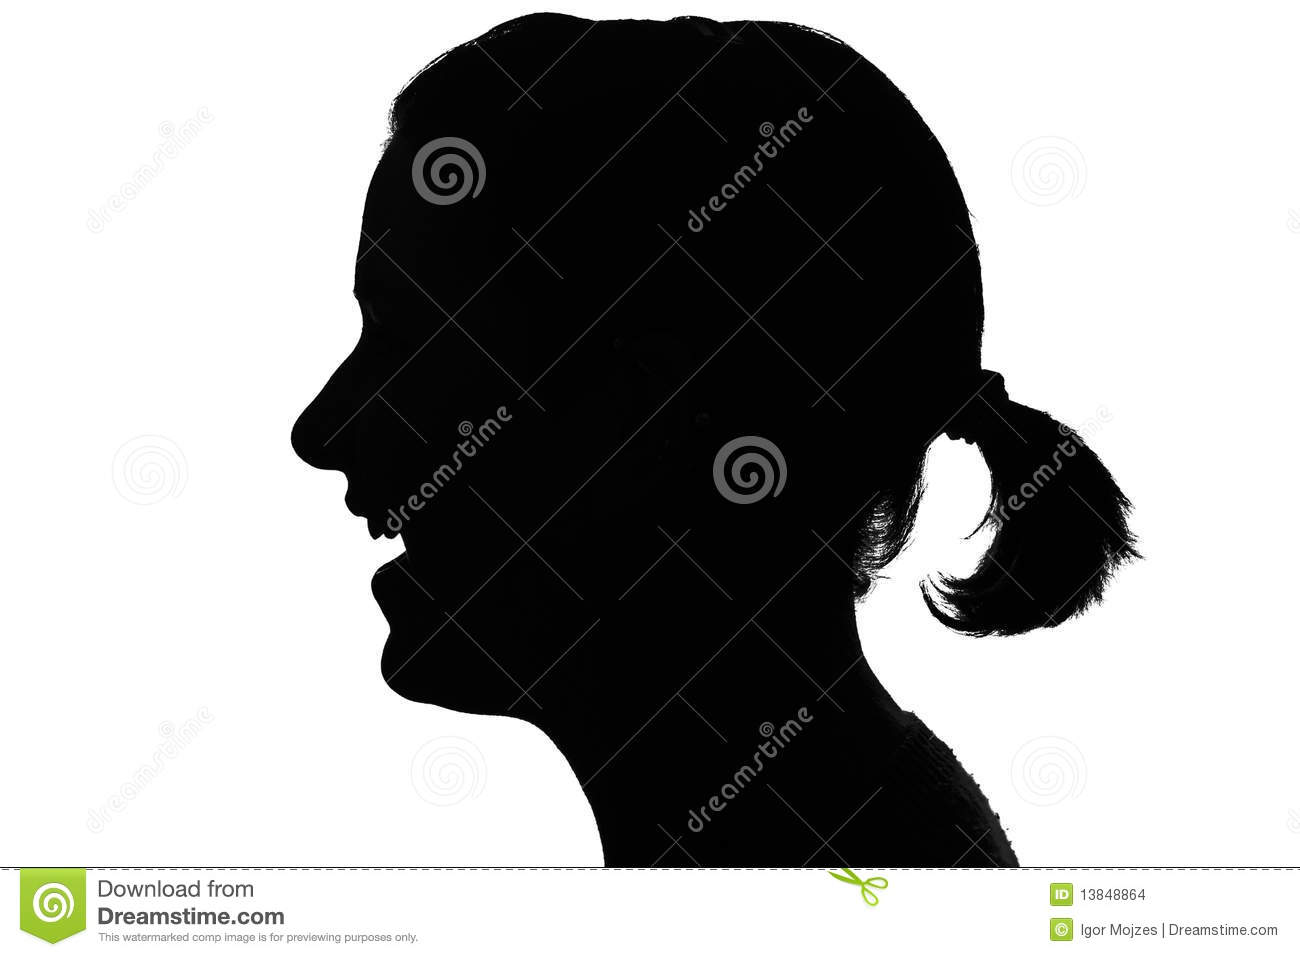 Profile Silhouette Stock Photos And Images  123RF